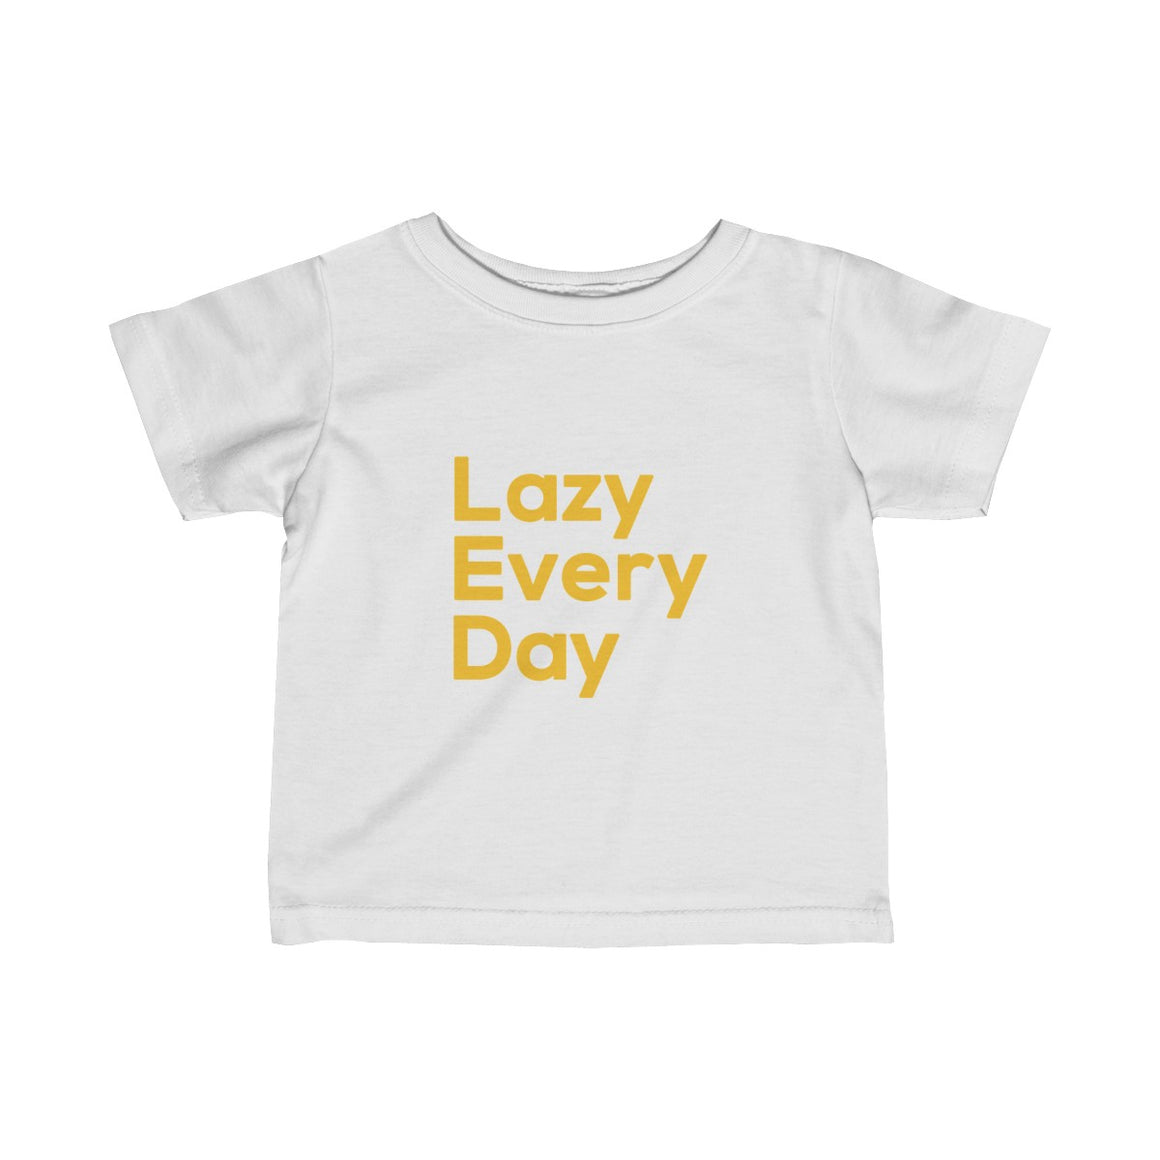 Lazy Every Day Tee